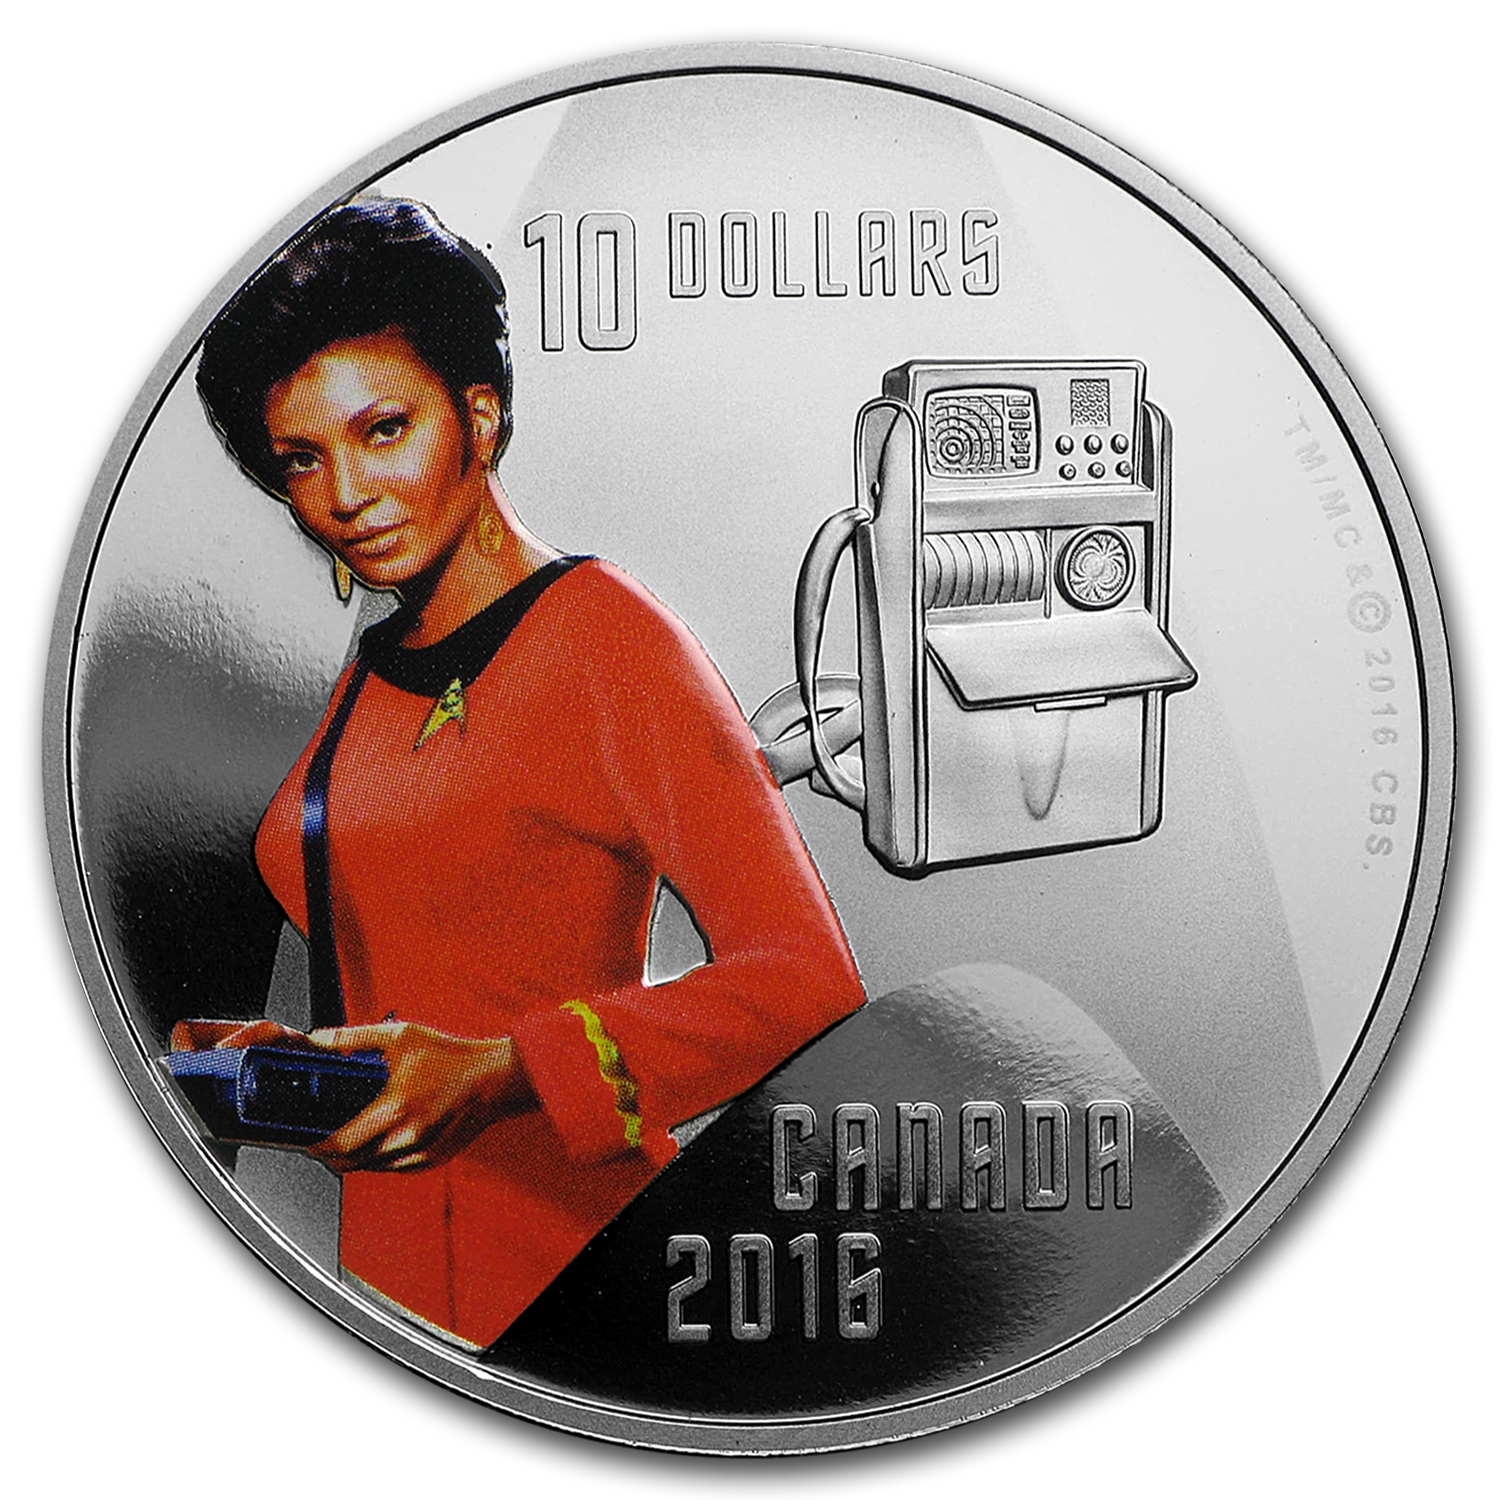 2016 Canada 1/2 oz Silver Proof $10 Star Trek Uhura